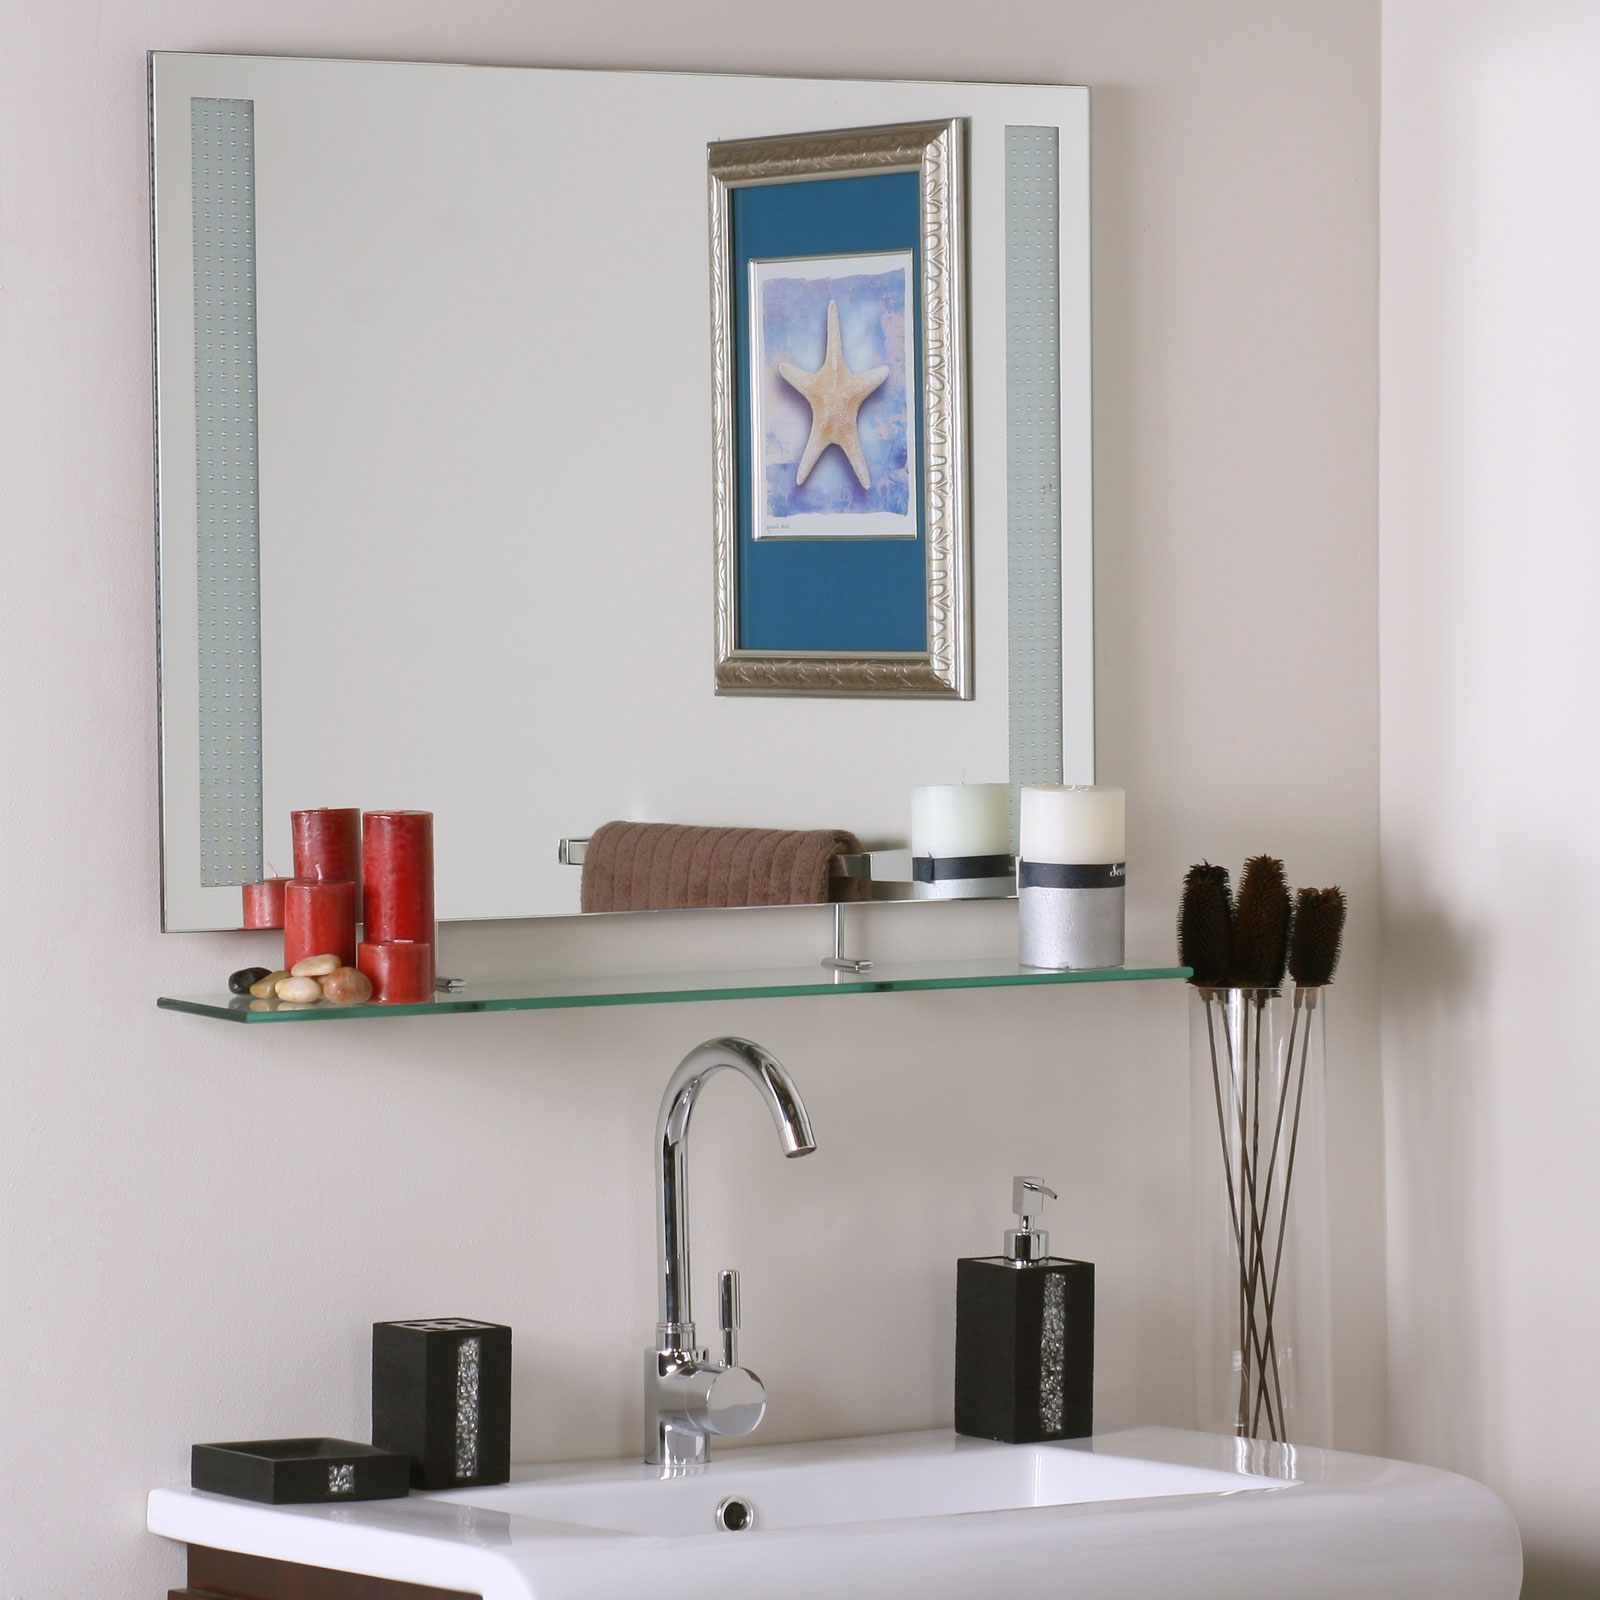 Permalink to Bathroom Mirror With Shelf